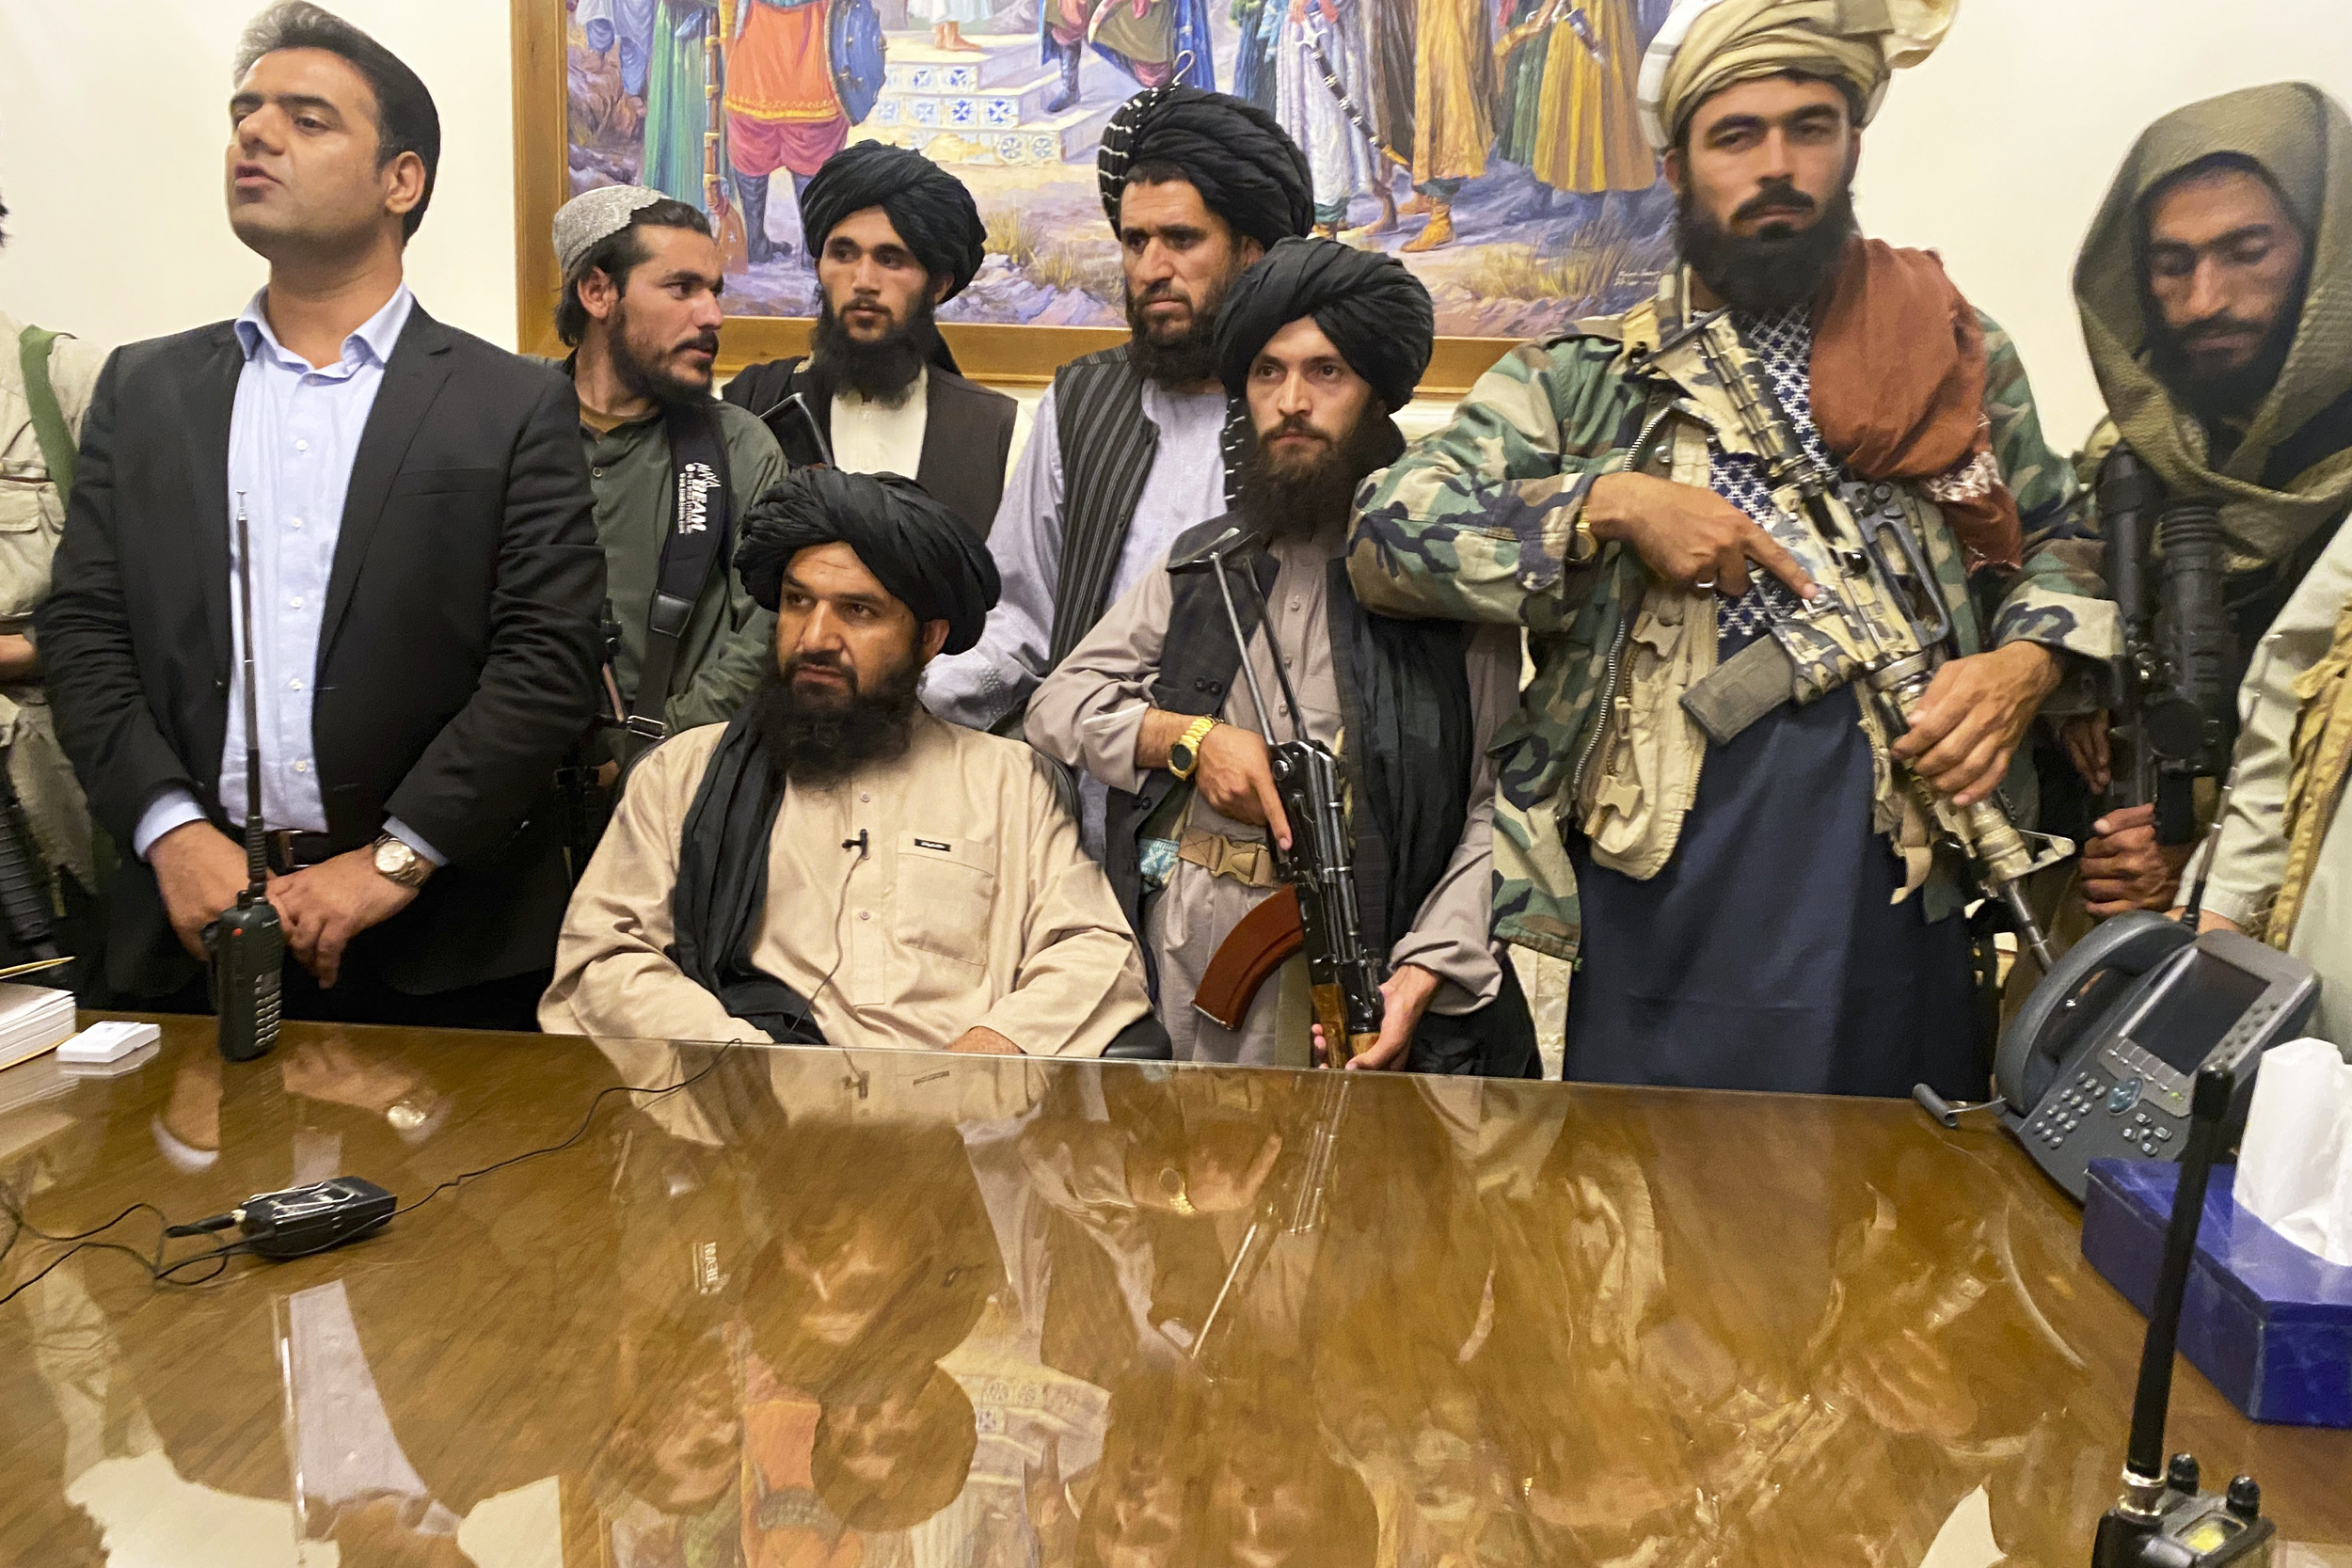 Video shows Taliban celebrating inside Afghanistan presidential palace